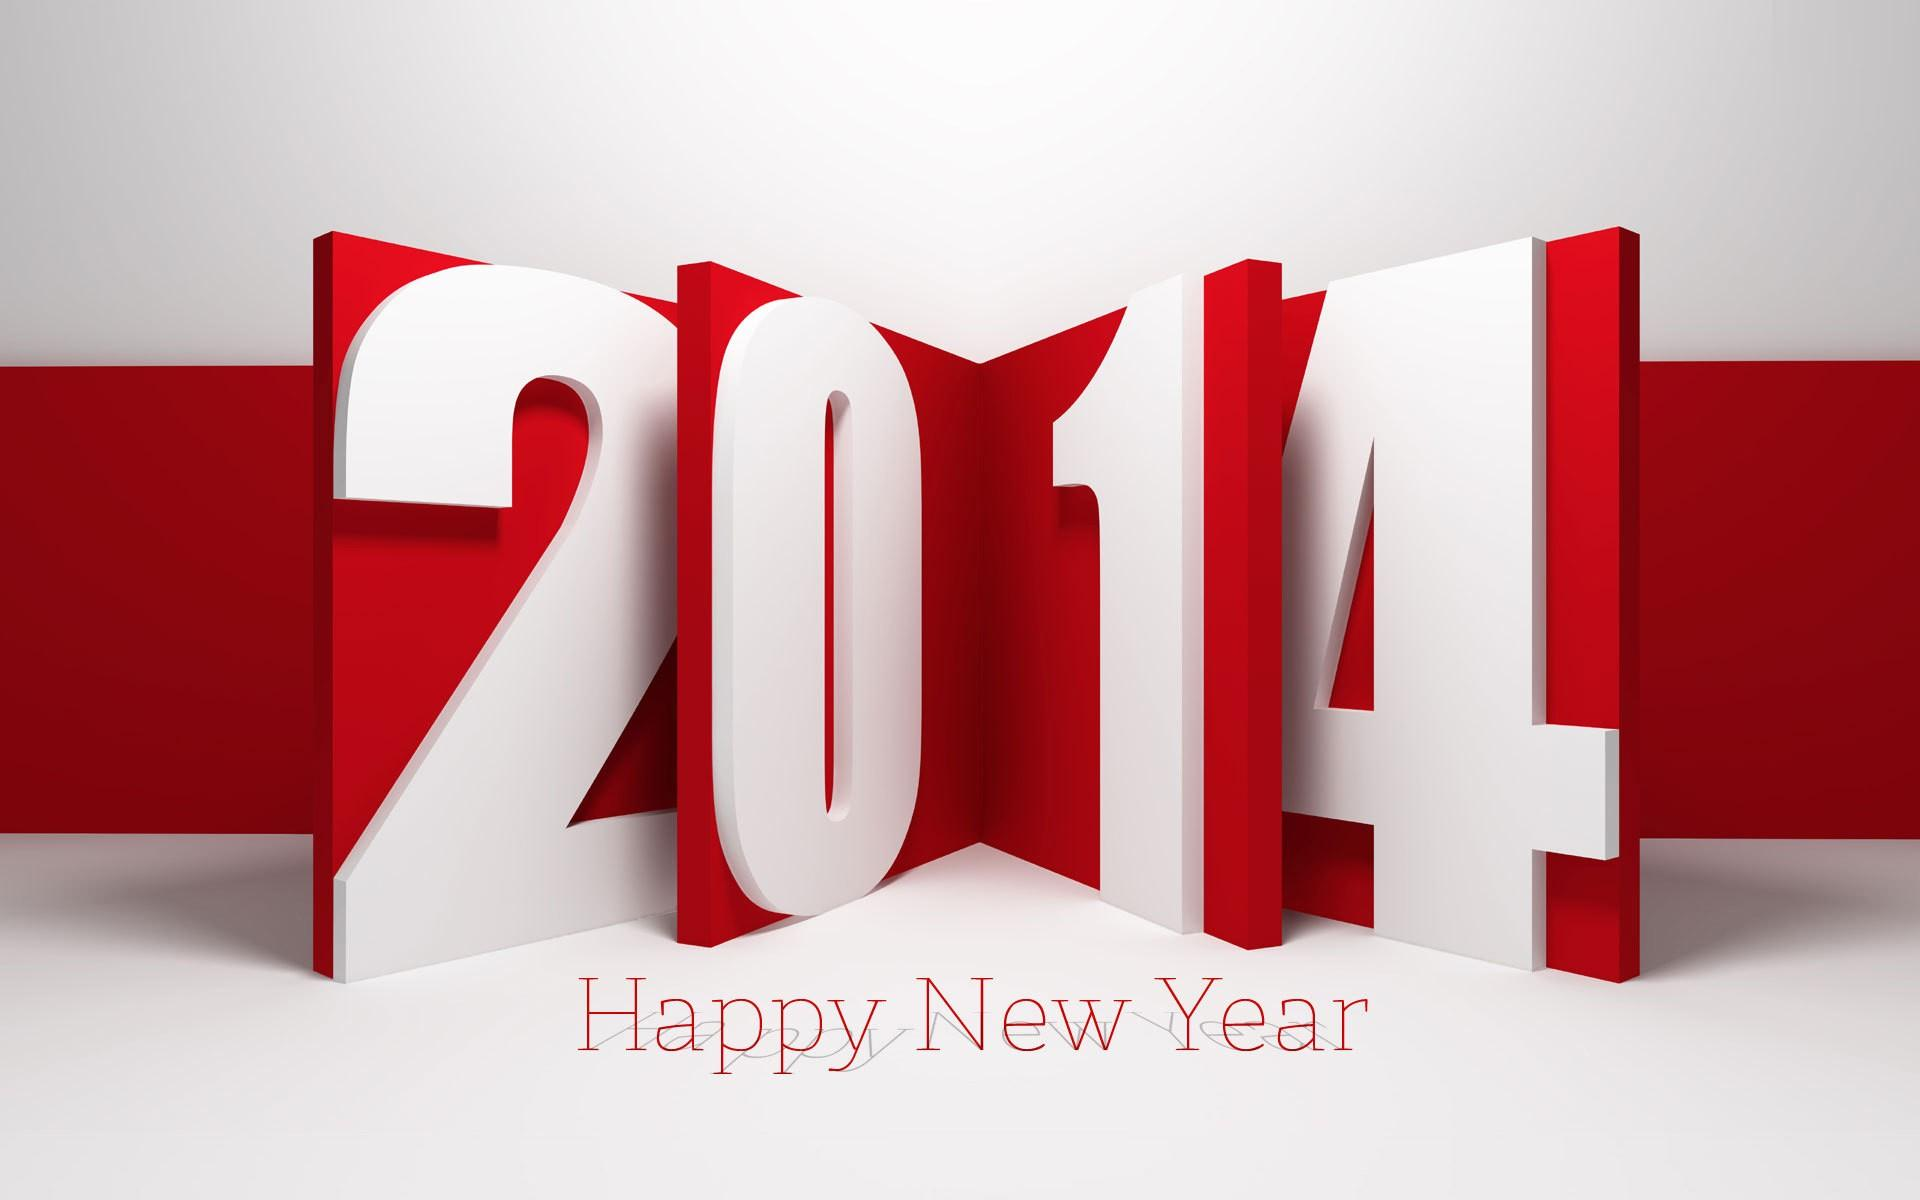 Happy new year 2014 free wallpaper wallpaper high definition happy new year 2014 free wallpaper voltagebd Image collections